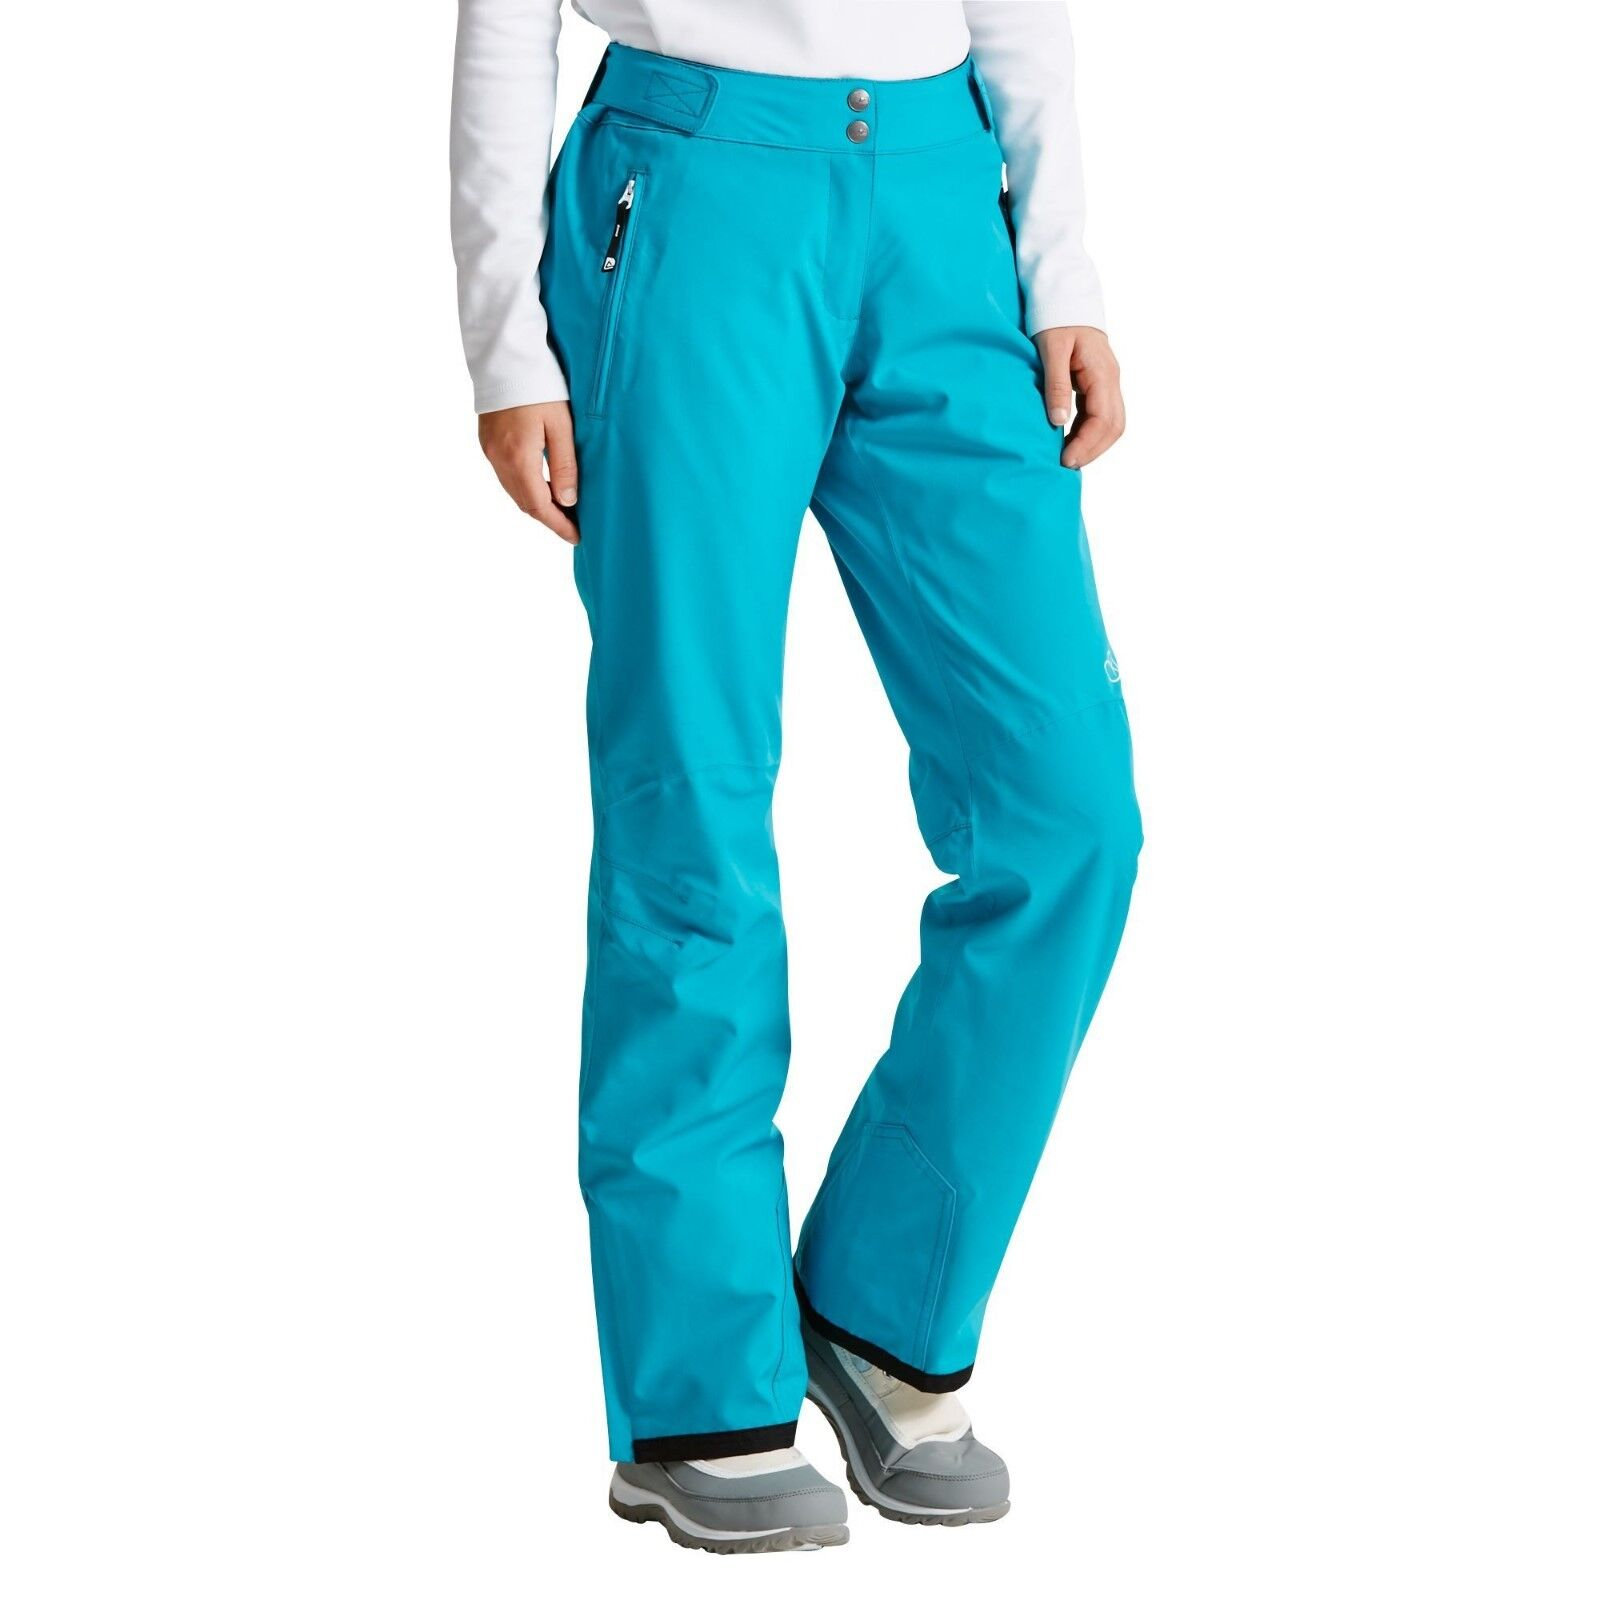 3a89df9f5 Womens DARE2B STAND FOR SEA BREEZE blueE Stretch Ski Pants LEG II ...